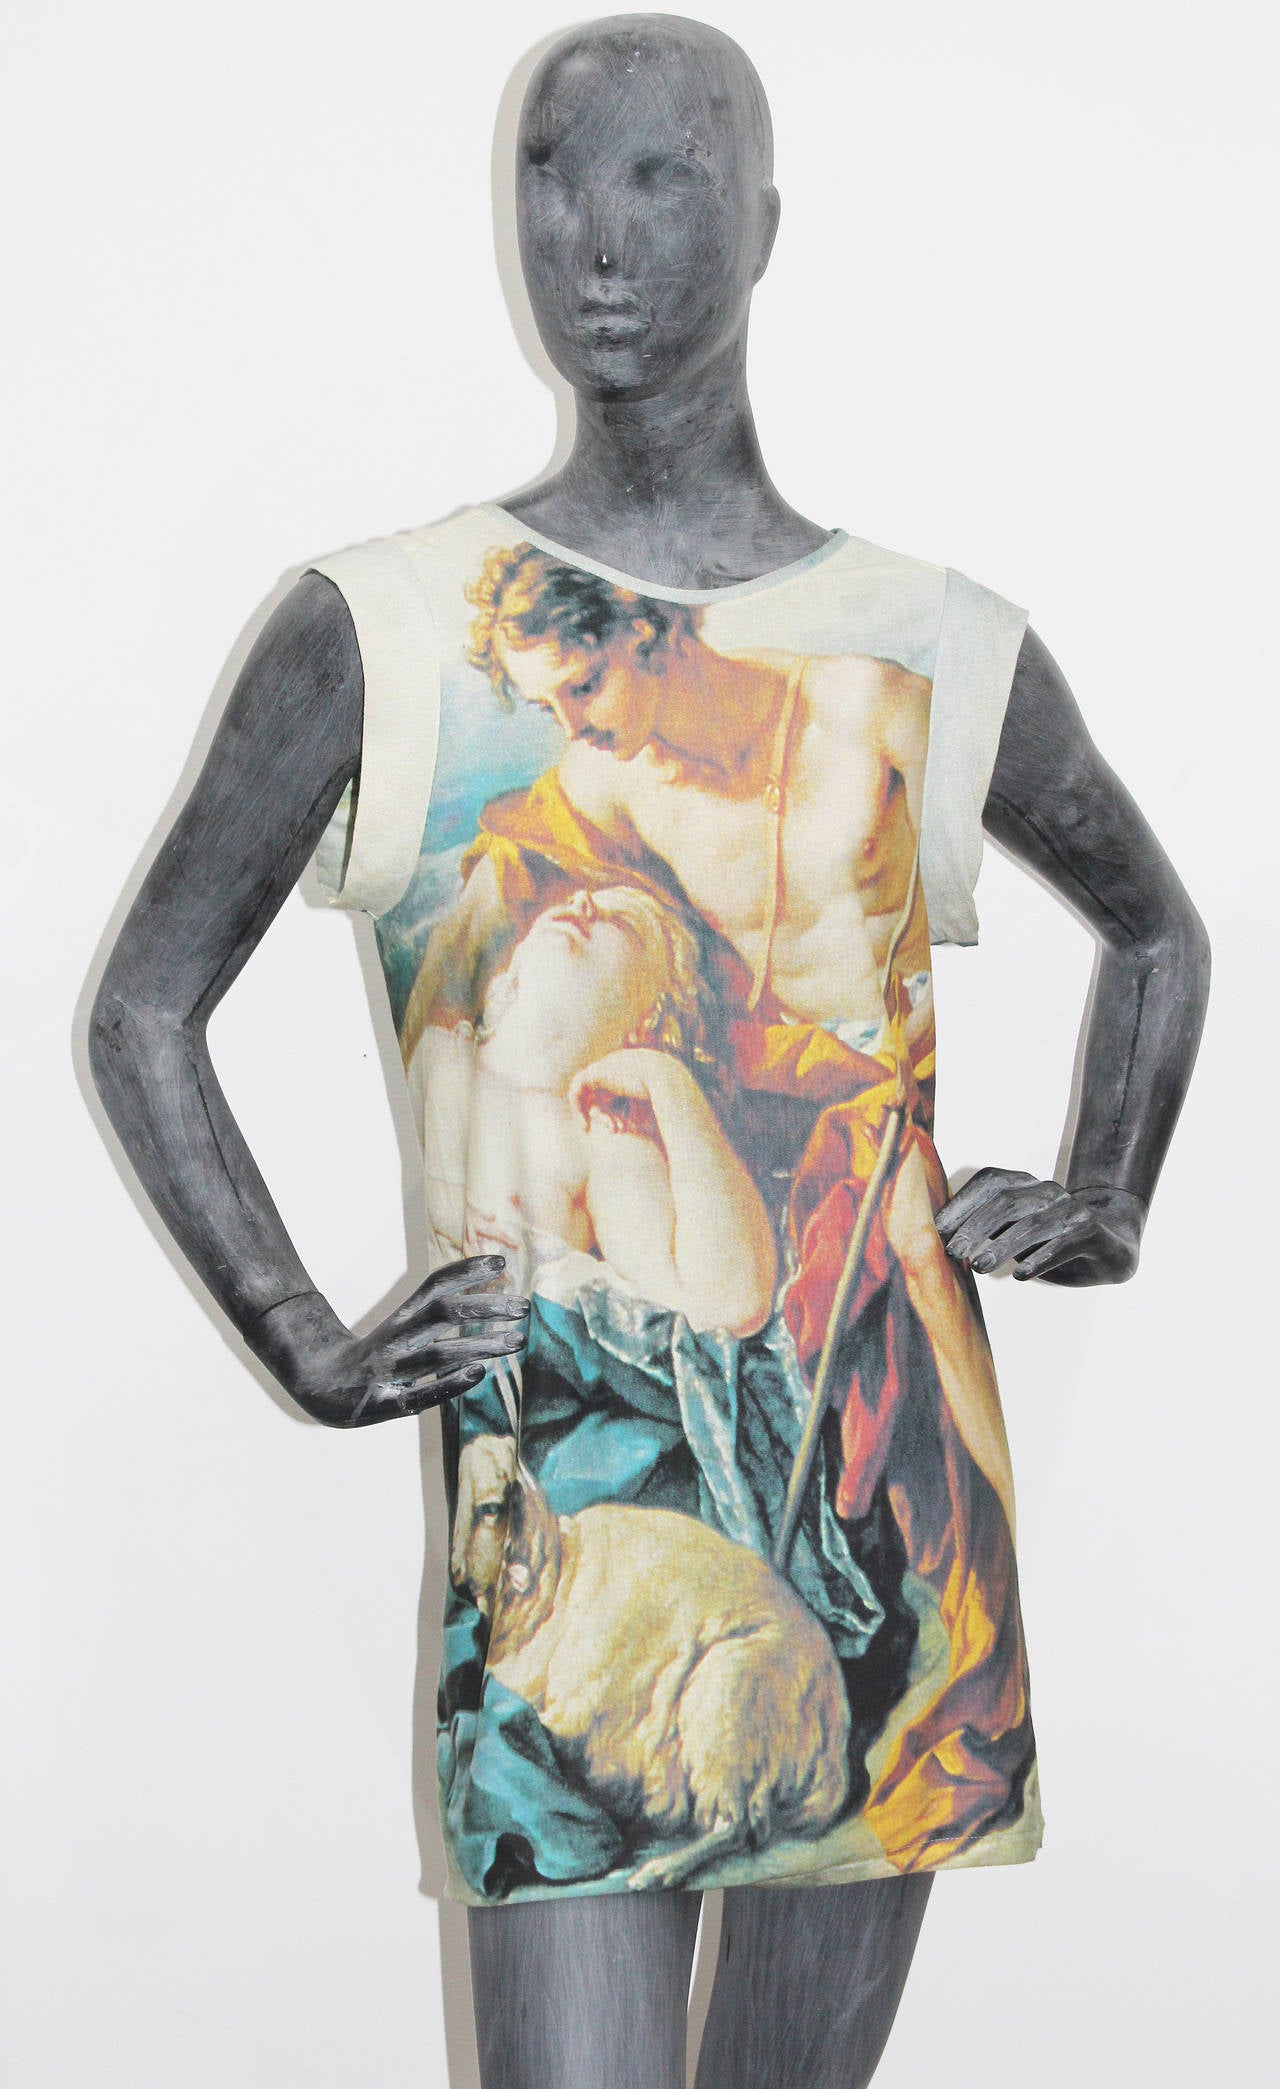 A fine and rare jersey mini dress with a Boucher painting print from the iconic 'Portrait' collection in 1990. 